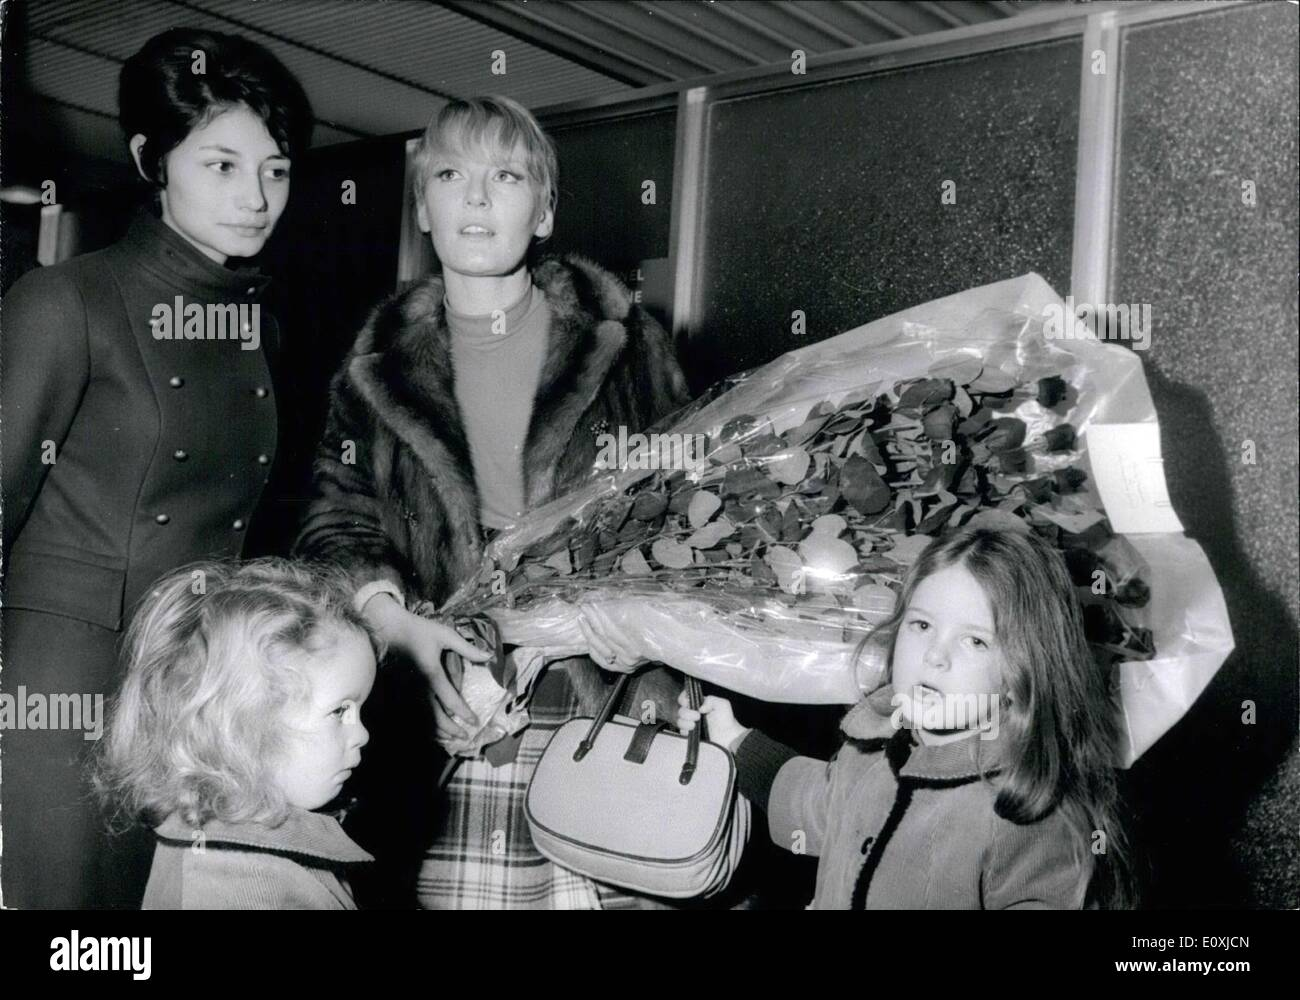 Jan. 24, 1967 - Singer Petula Clarc and Her Two Daughters Arriving in Paris - Stock Image